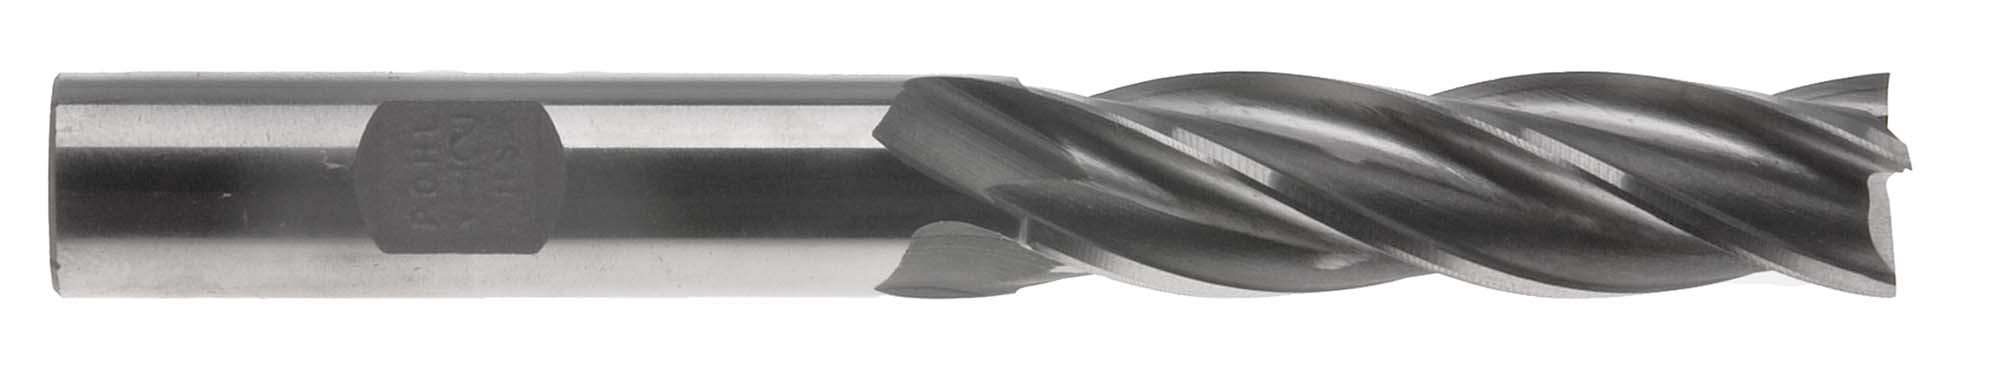 "EM-FL24X  3/4"" 4 Flute Long End Mill - 1/2"" Shank, High Speed Steel"